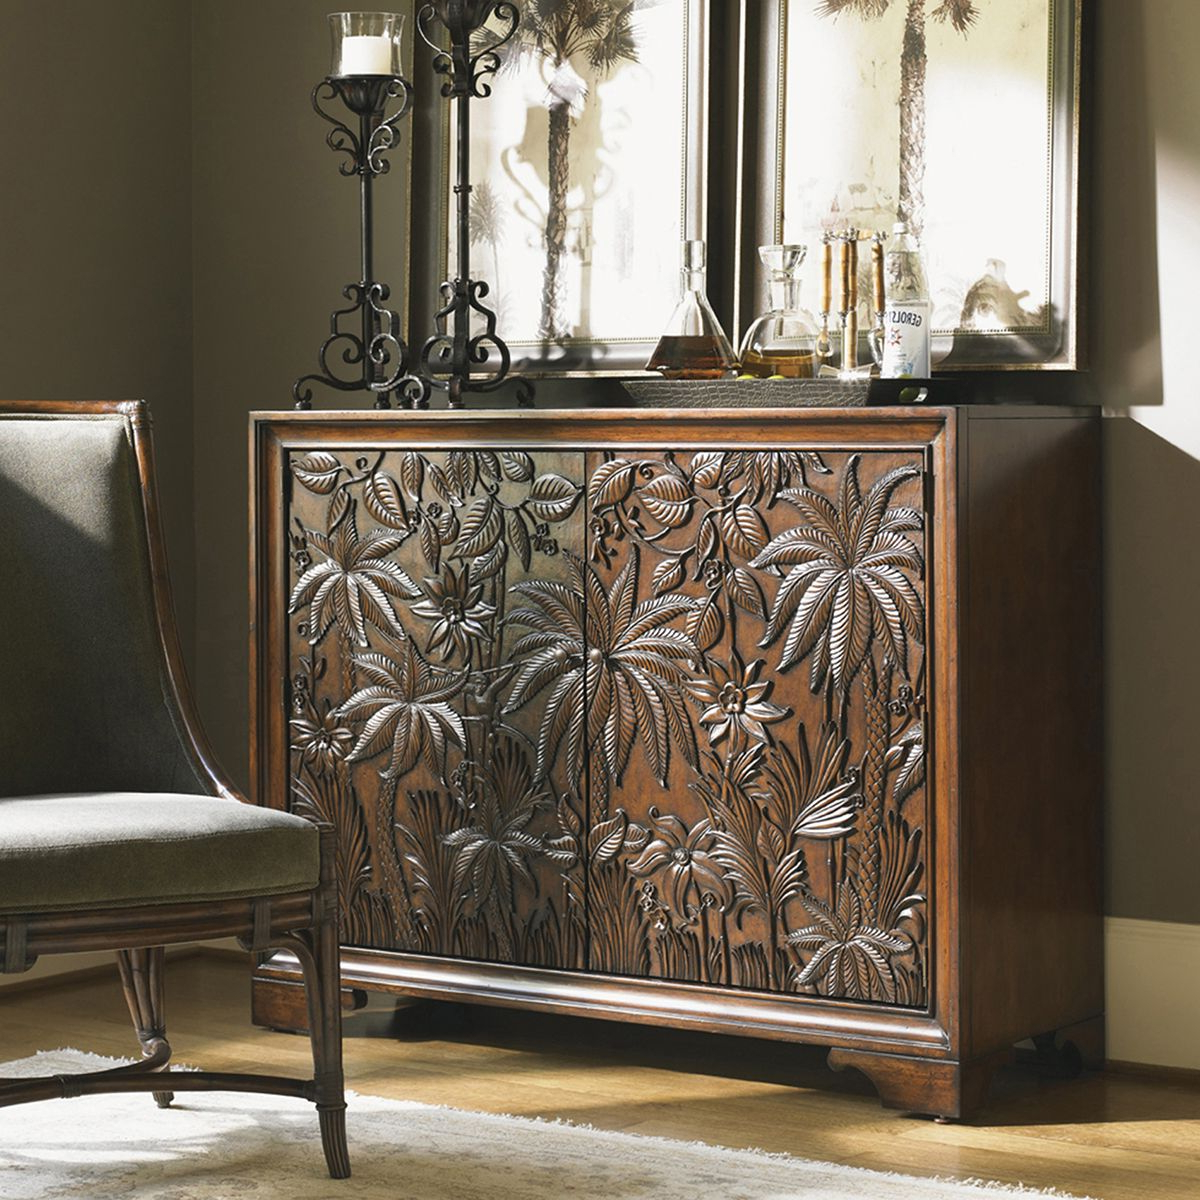 Lexington Landara Balboa Carved Door Chest 545 973 | Tommy Bamaha Pertaining To Balboa Carved Console Tables (Gallery 5 of 20)